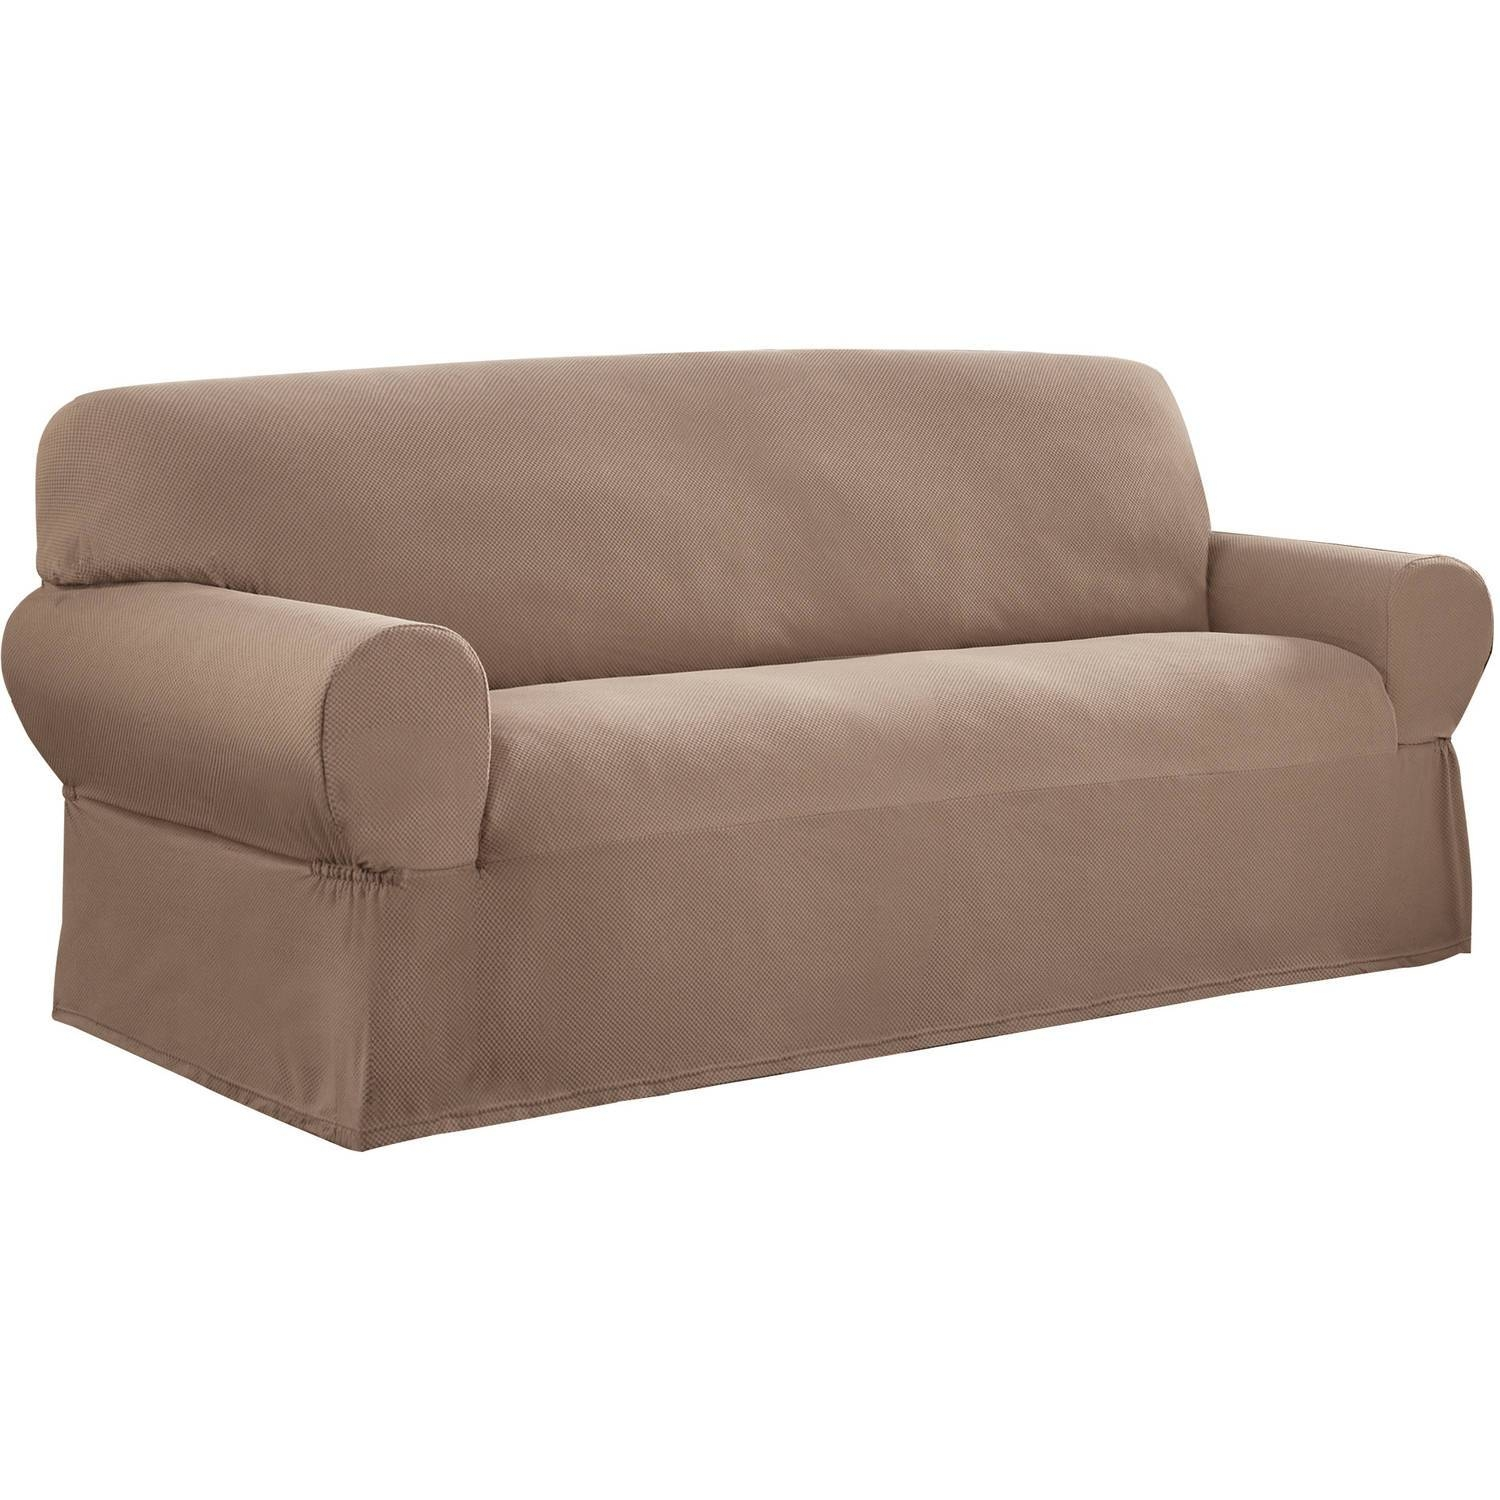 Serta Relaxed Fit Twill Furniture Slipcover, Sofa 1-Piece T in Slipcovers for Sofas and Chairs (Image 26 of 30)